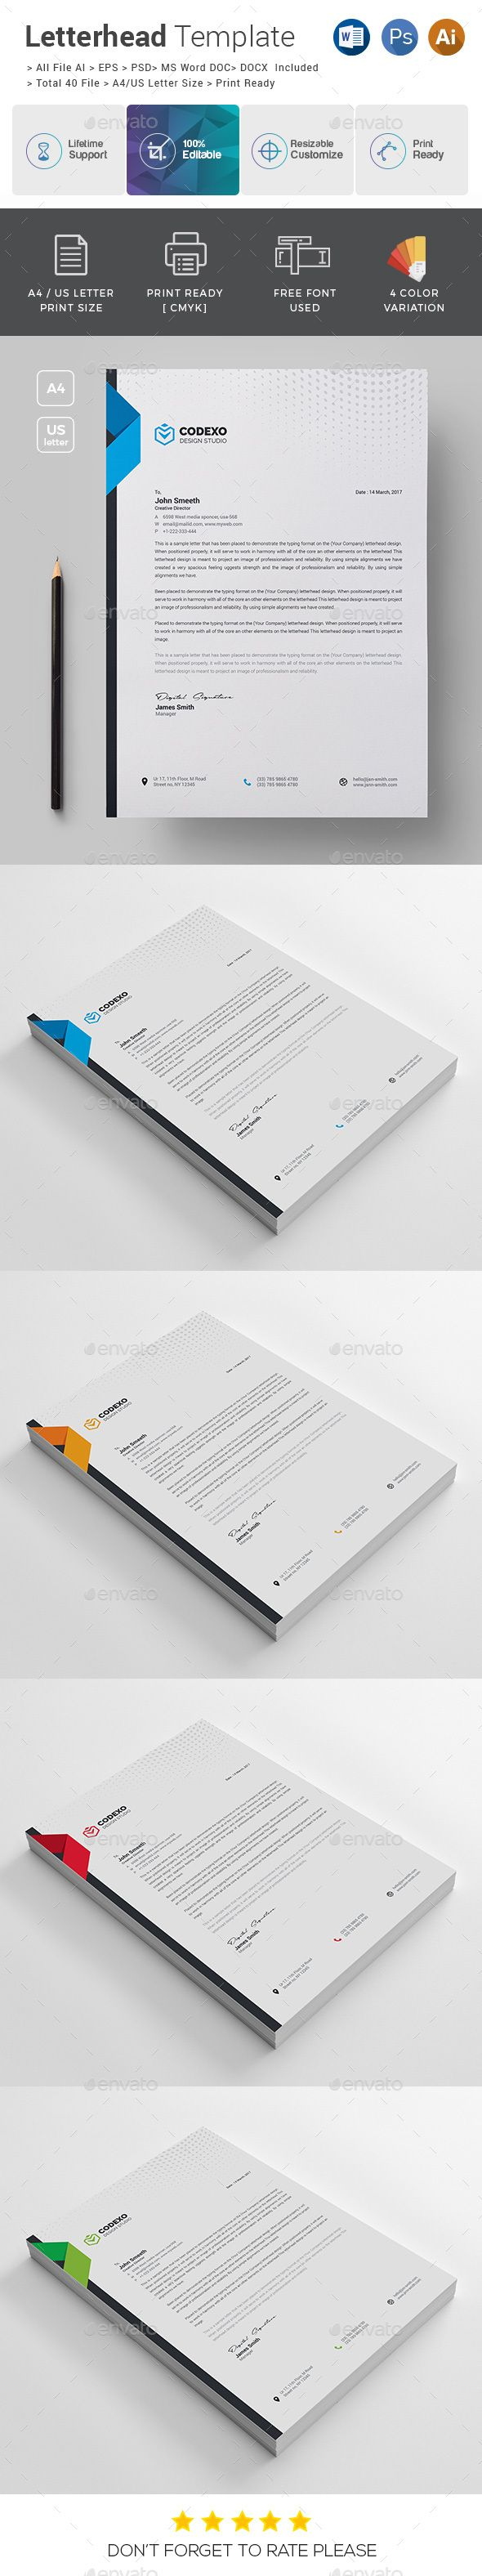 corporate letterhead template psd, vector eps, ai sample resume for first time job samples electrical engineering ux designer example